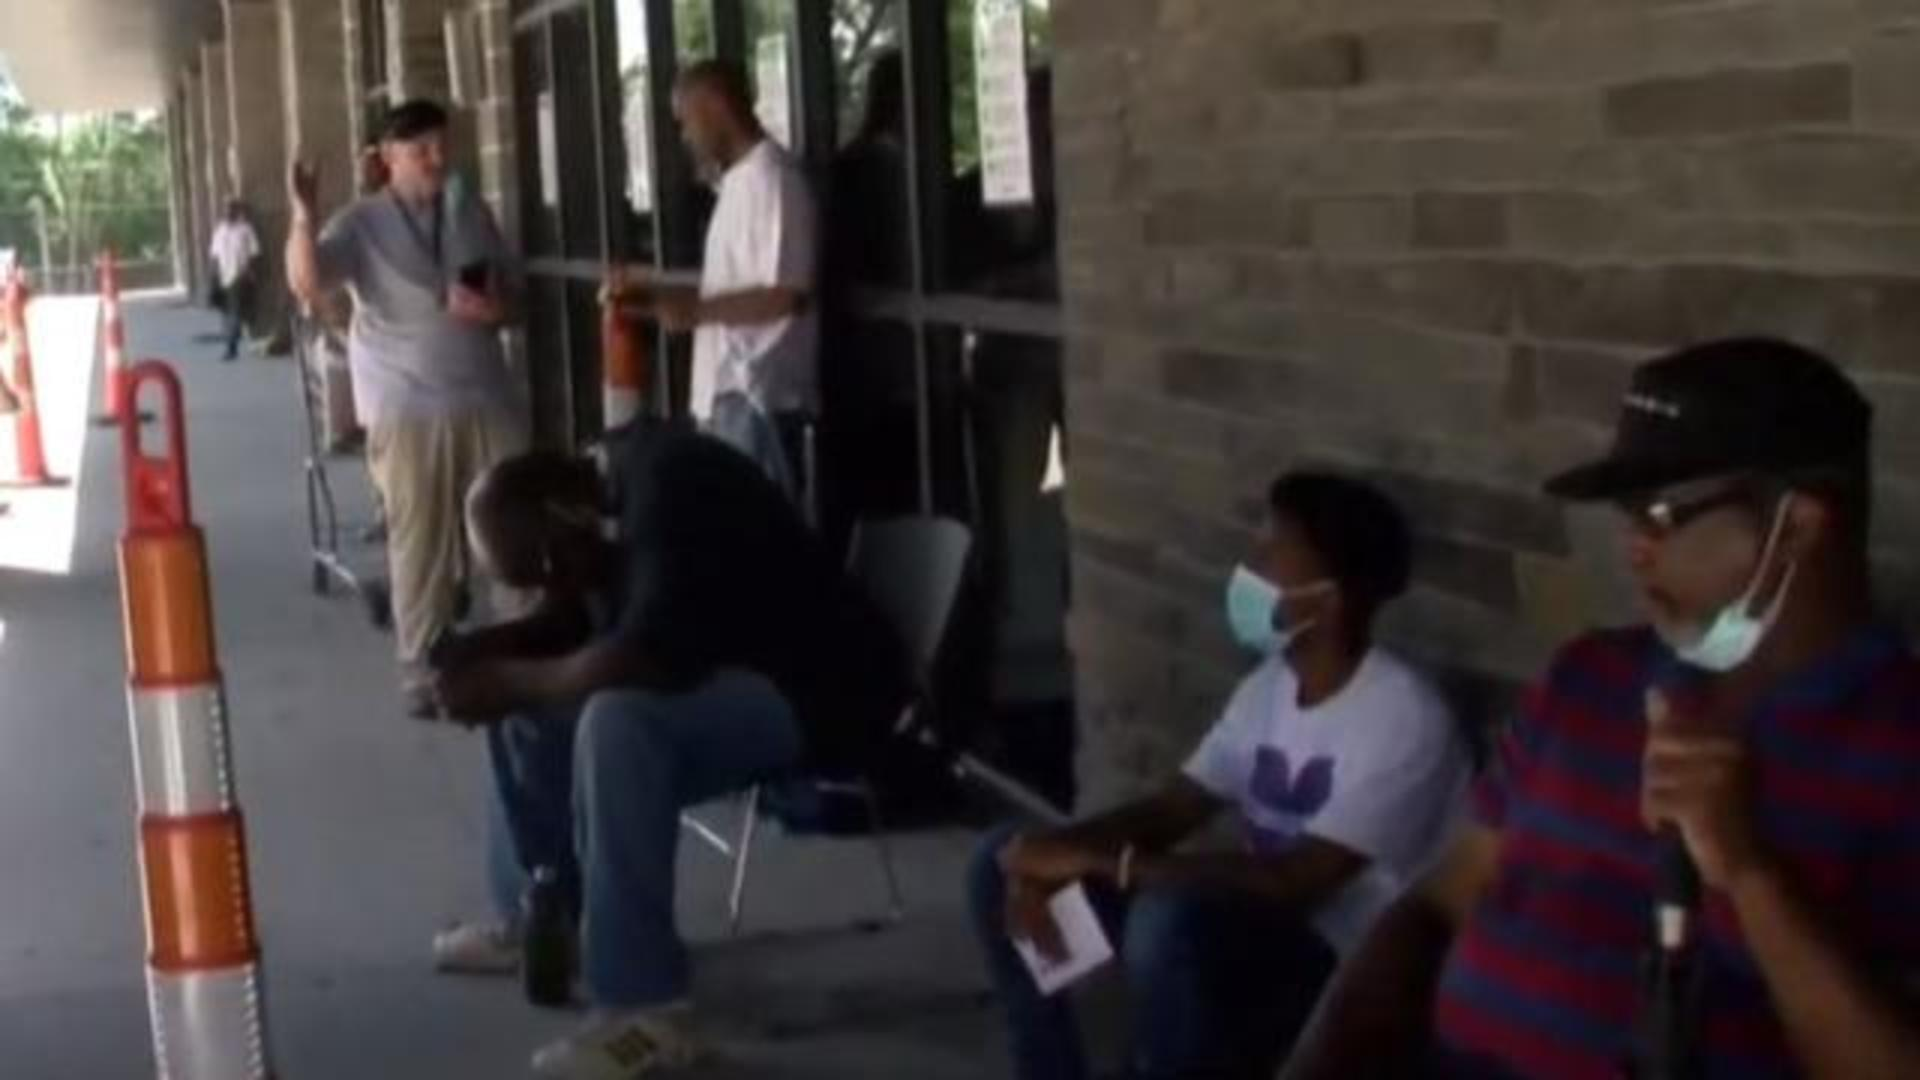 Extra 600 In Unemployment Benefits Ends As Negotiations Continue Cbs News